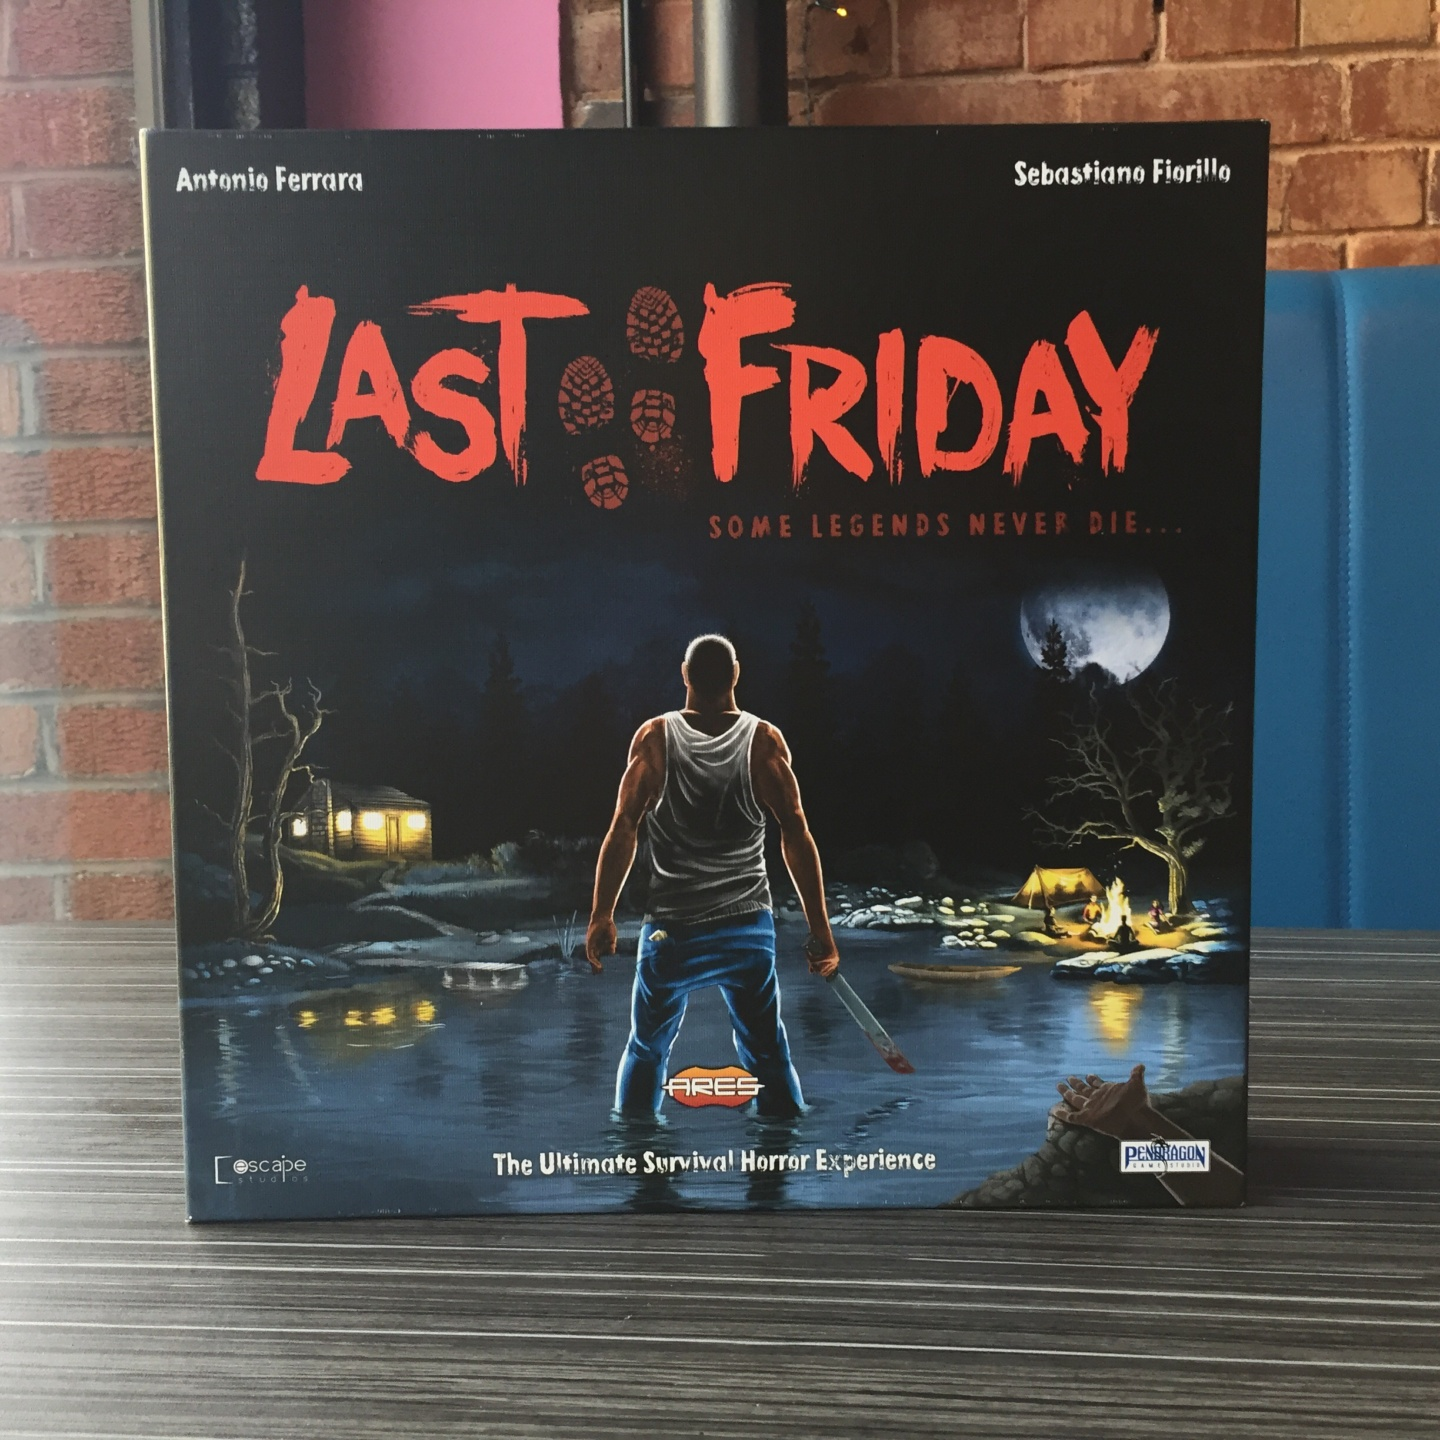 Last Friday: A Board Game Review